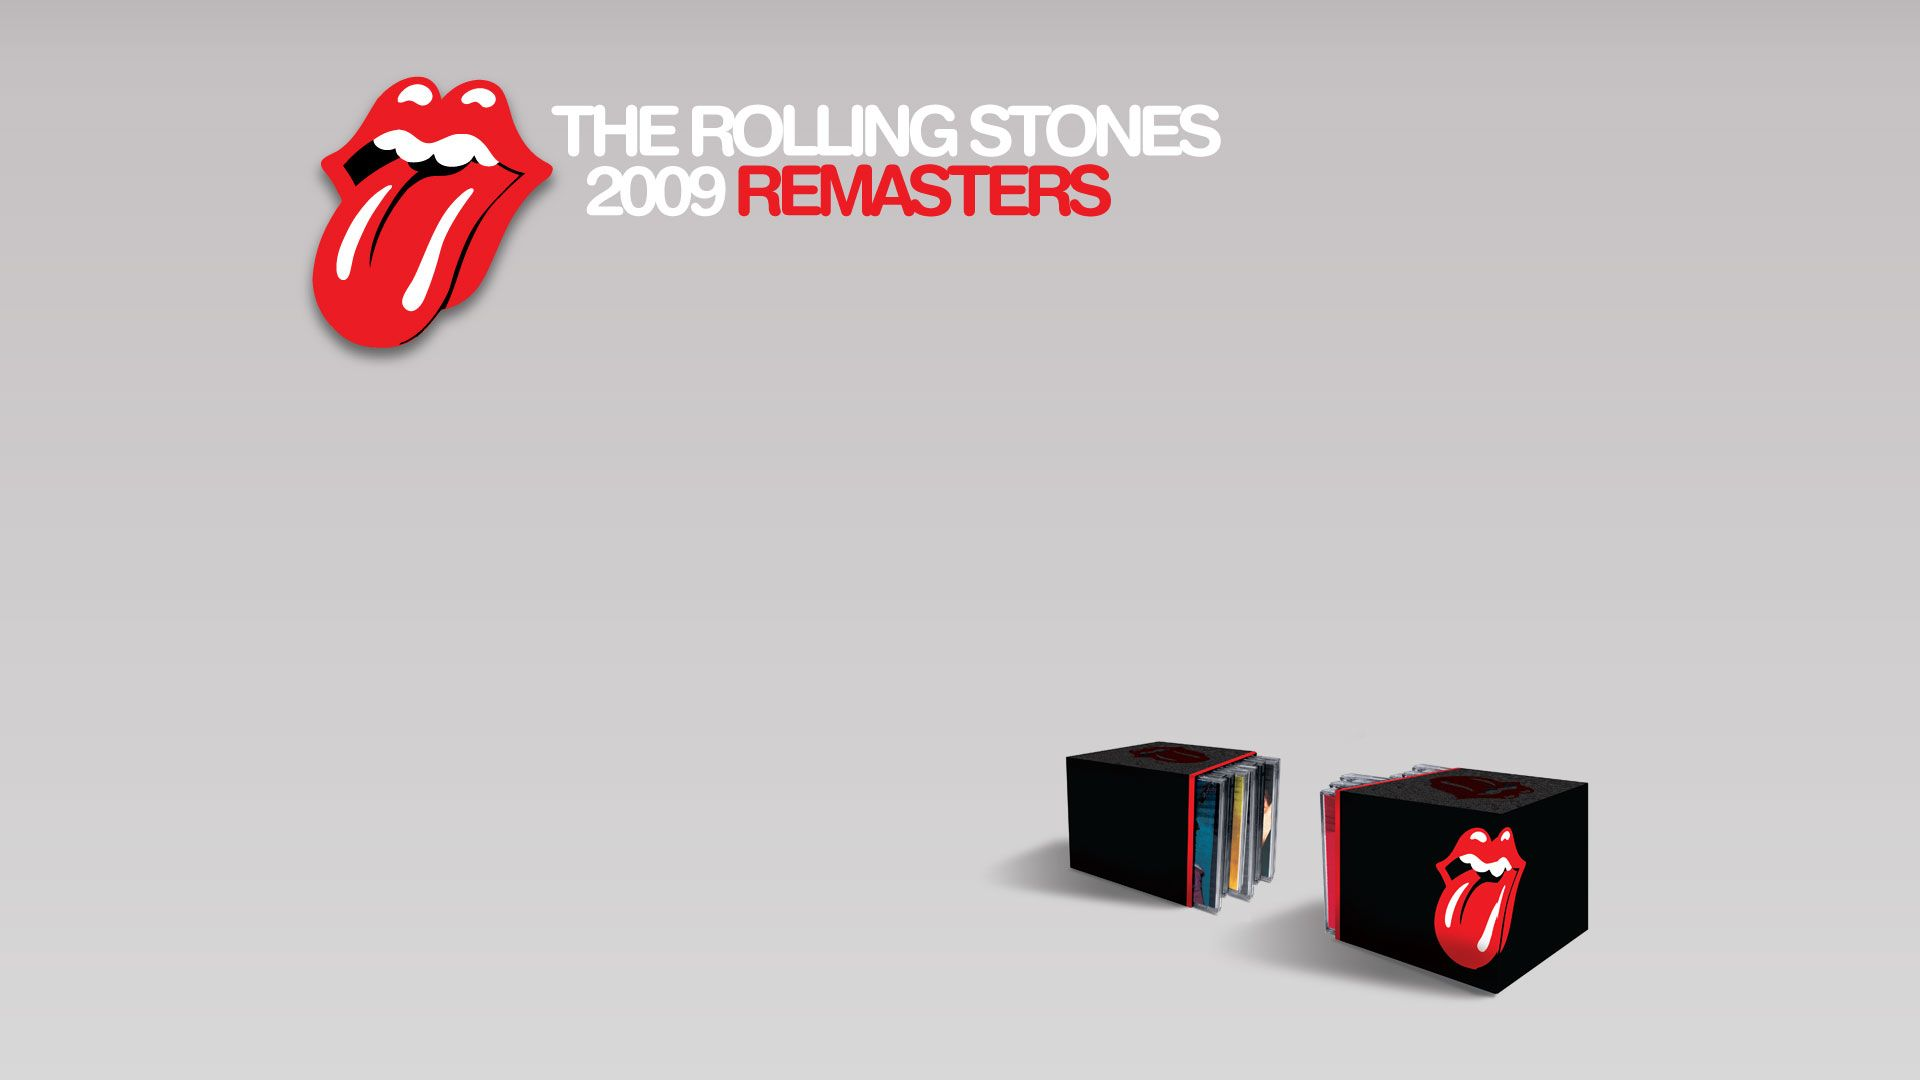 Rolling Stones hd picture